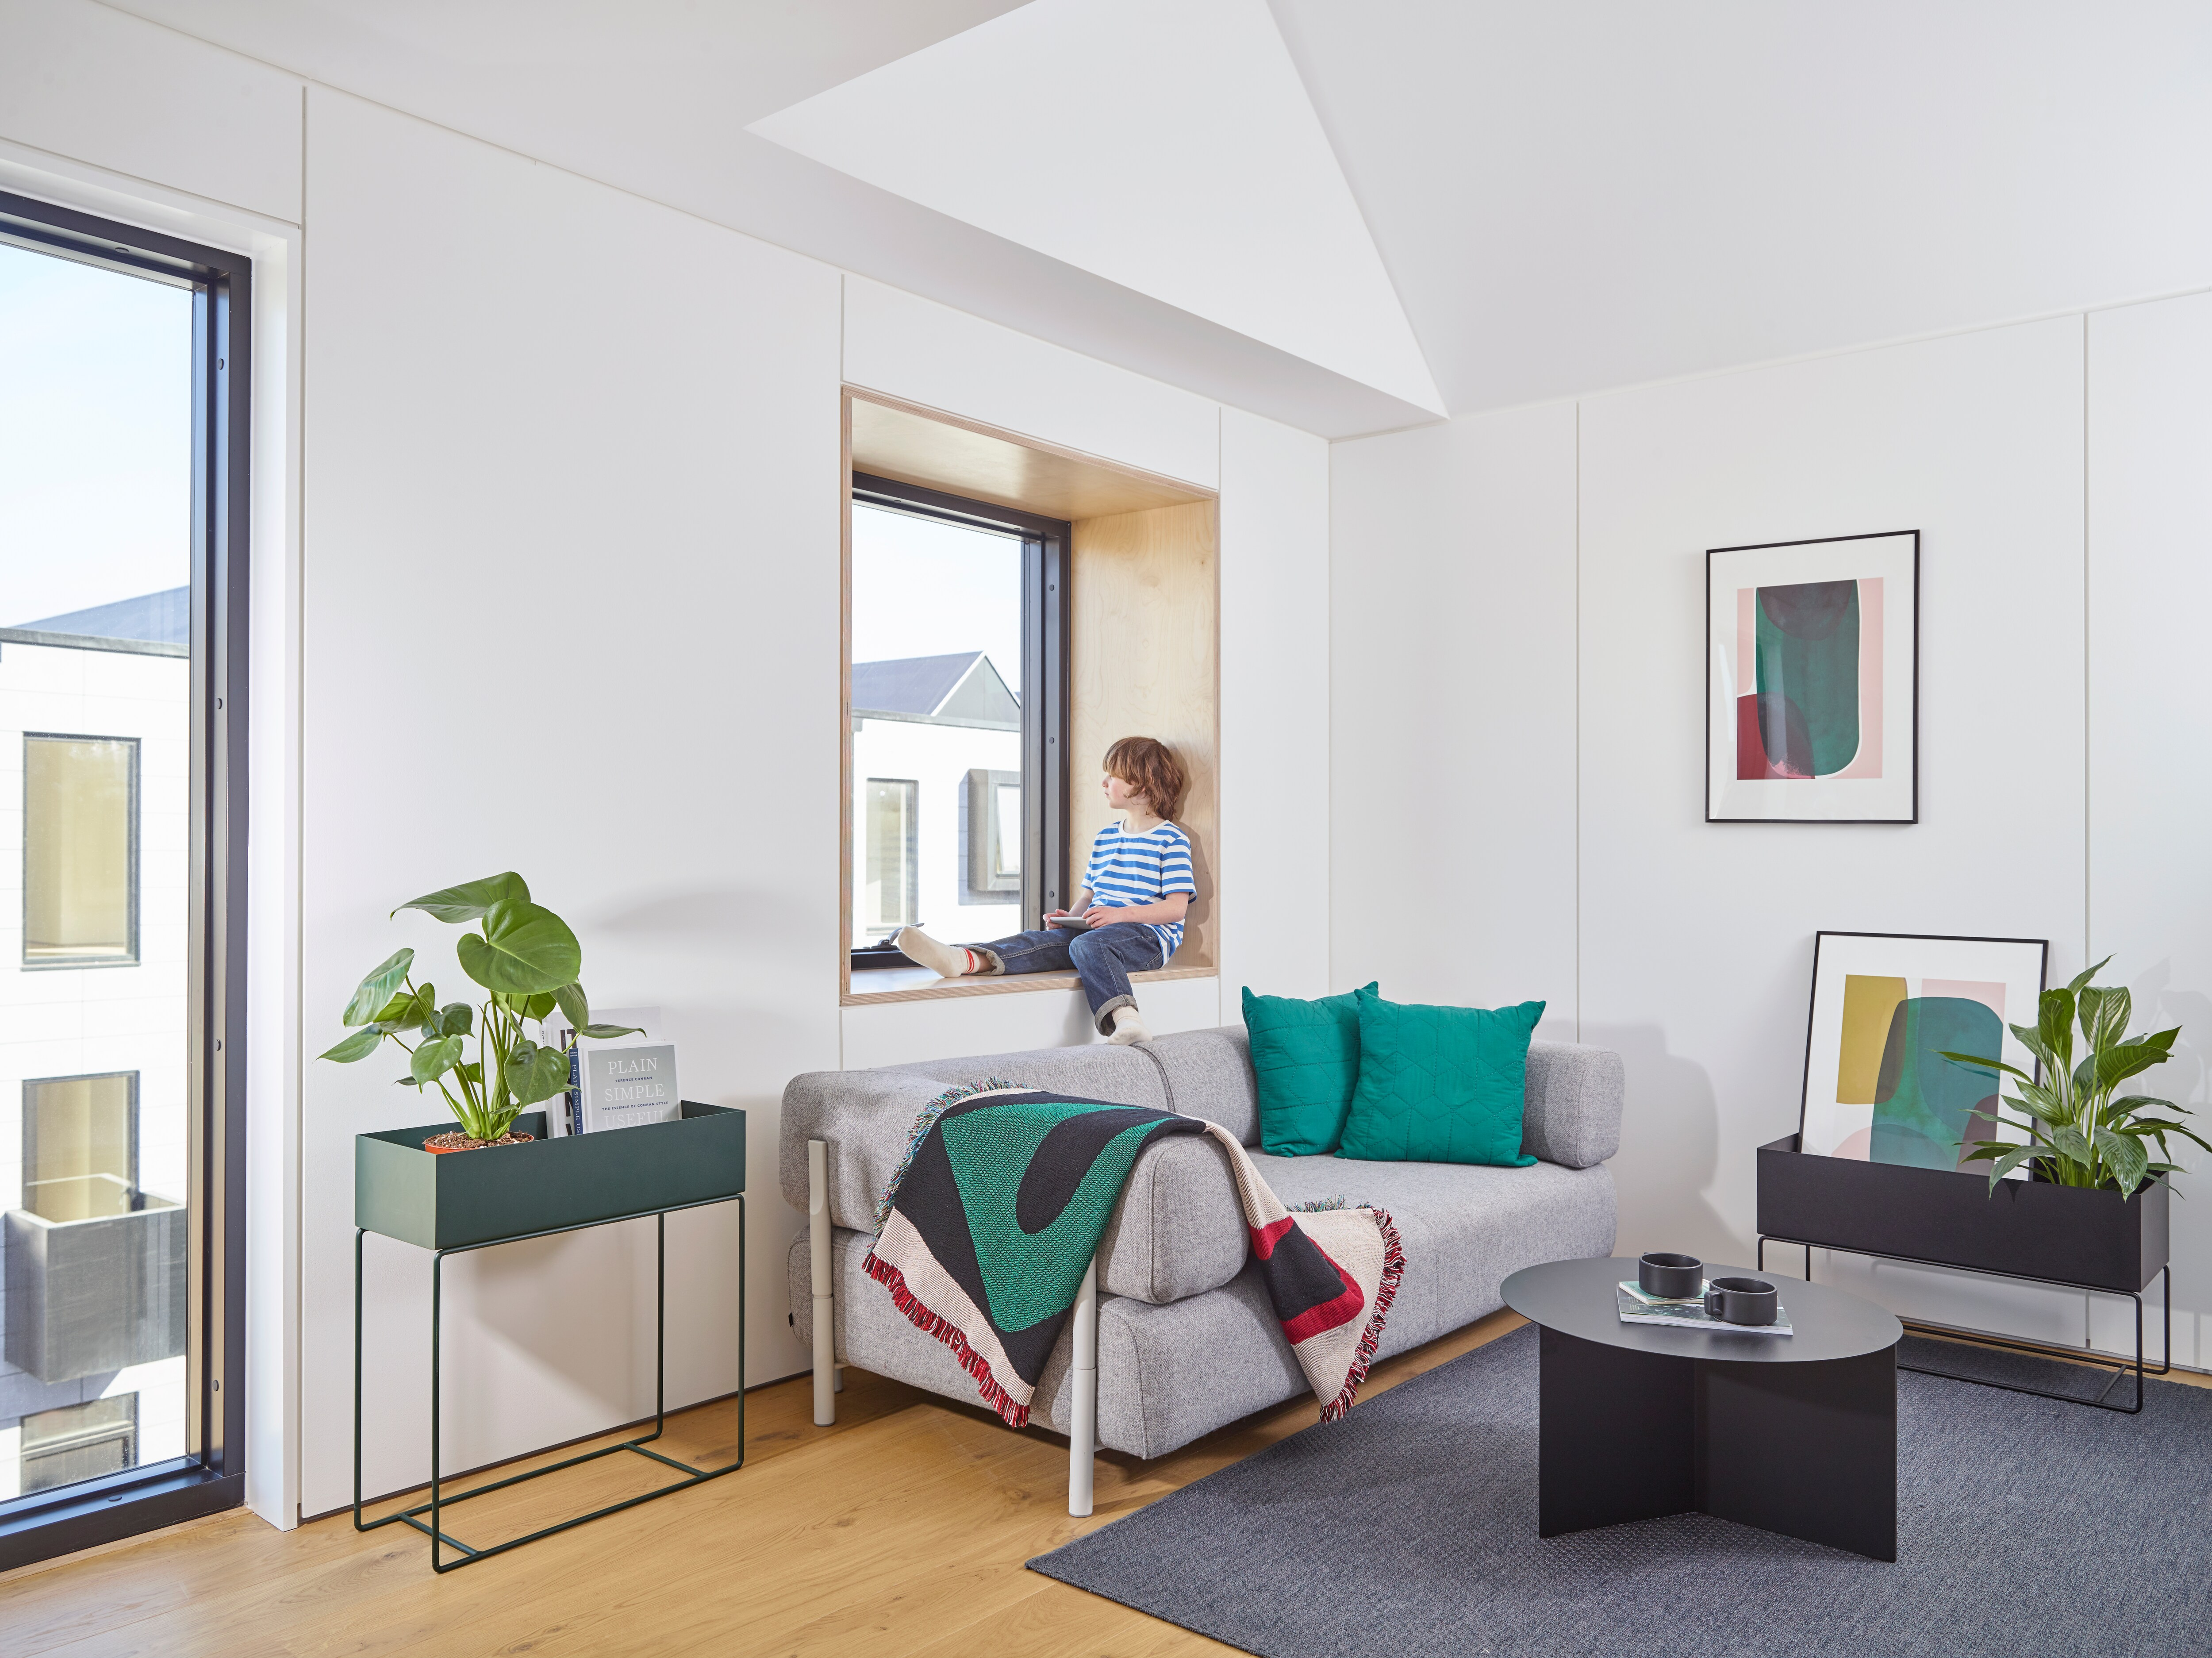 Image of a city apartment with white walls and a child sitting in the windowsill.